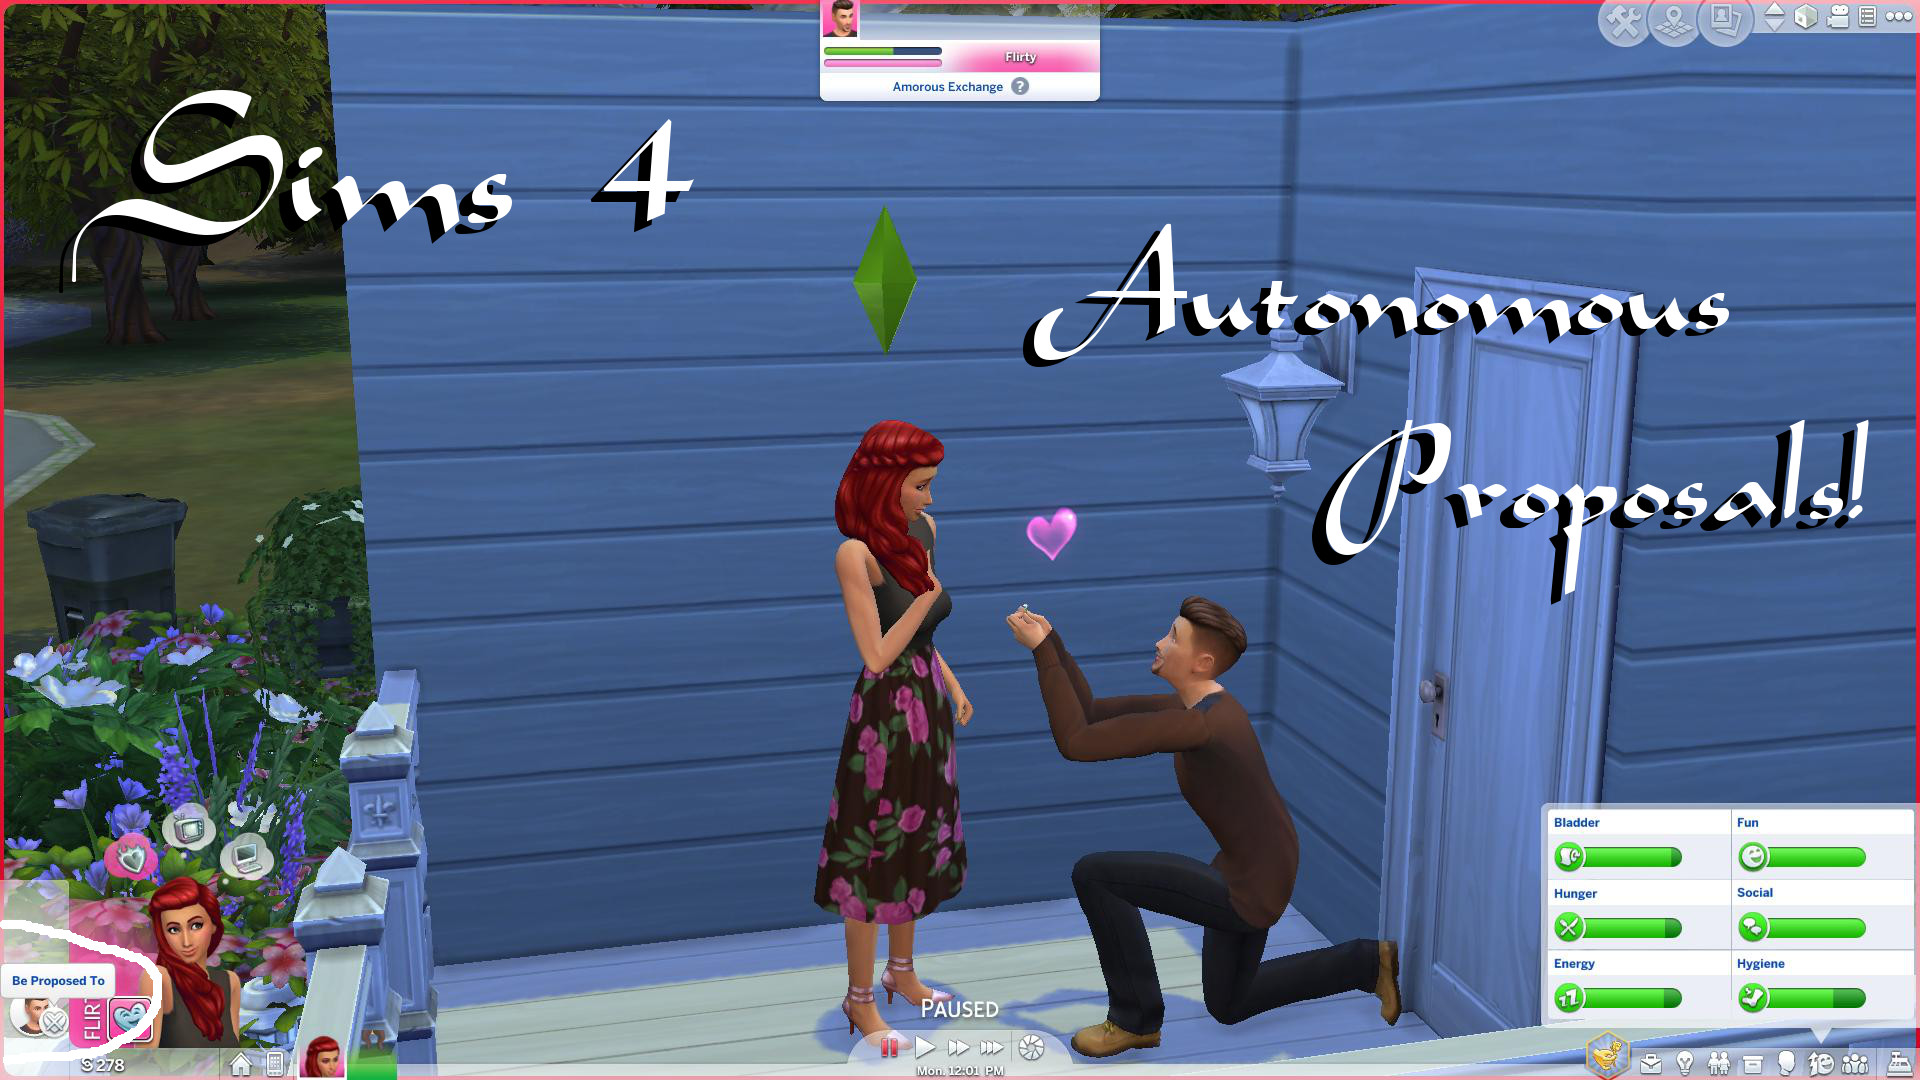 Mod The Sims - Autonomous Proposals!